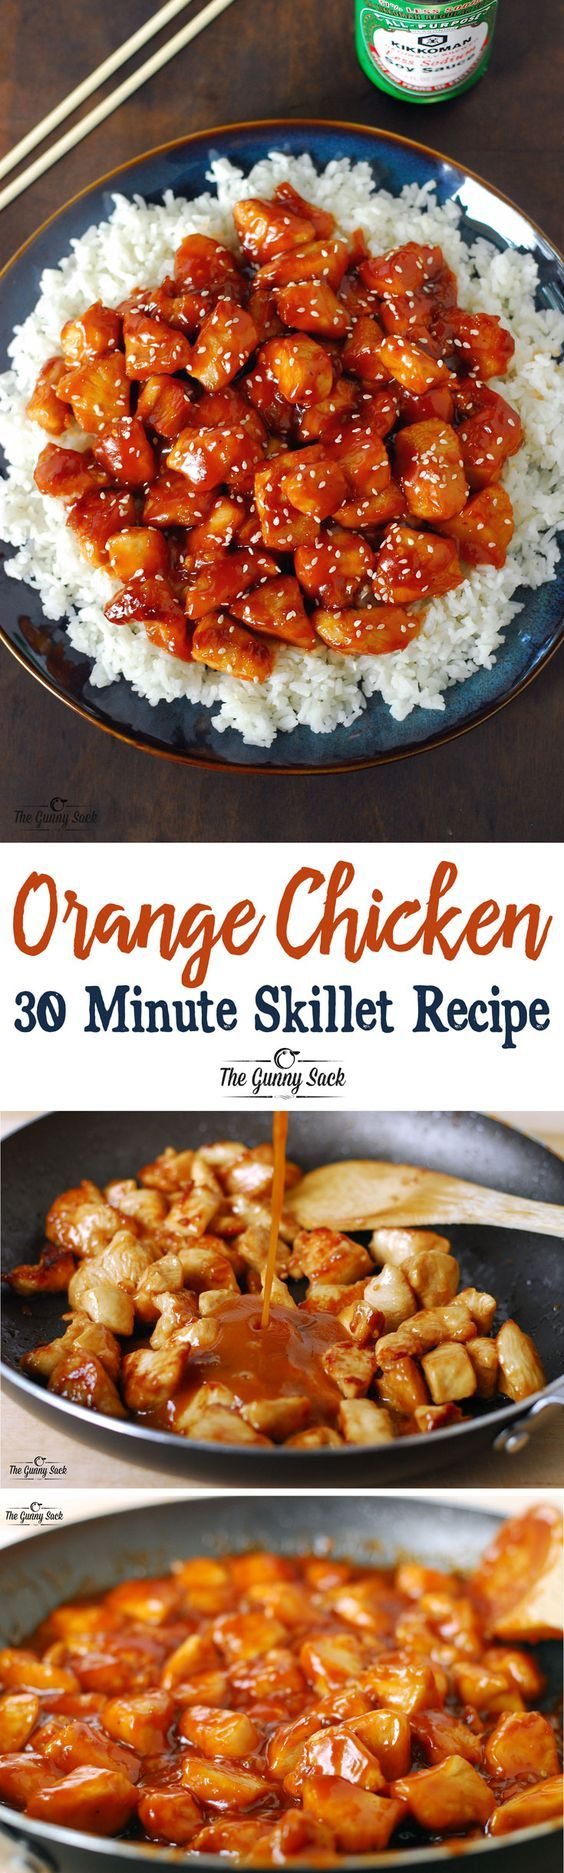 orange chicken 30 minute skillet recipe a easy dinner idea that is family friendly easy. Black Bedroom Furniture Sets. Home Design Ideas